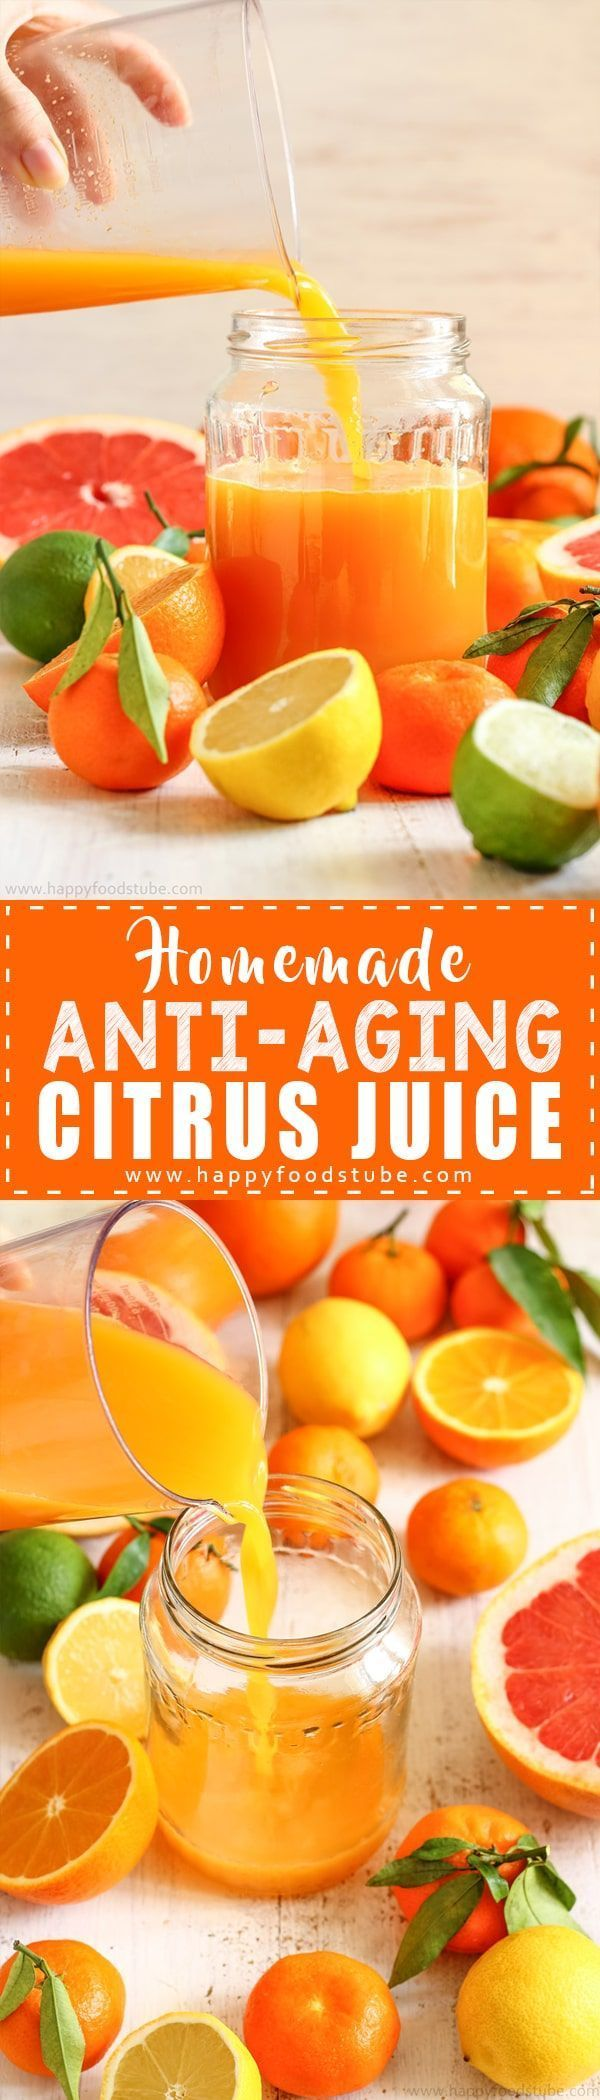 Reduce wrinkles with this Homemade Anti-Aging Citrus Juice Recipe. Vitamin C rich juice helps reduce aging signs and maintain healthy skin